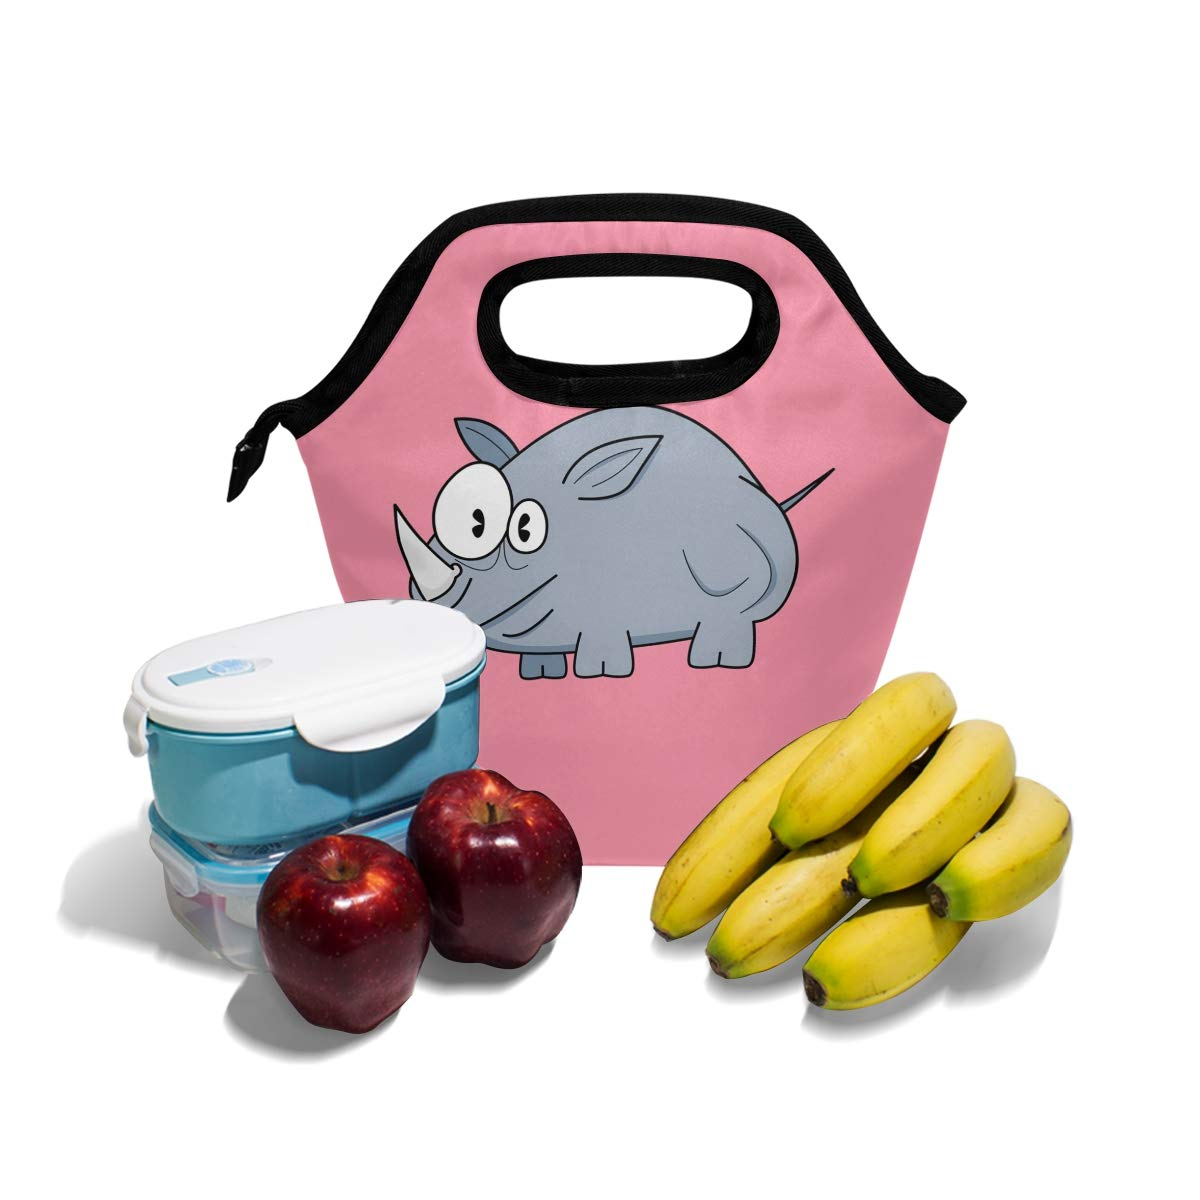 Amazon com: Lunch Tote Bag with Cartoon Rhinoceros Print- Insulated